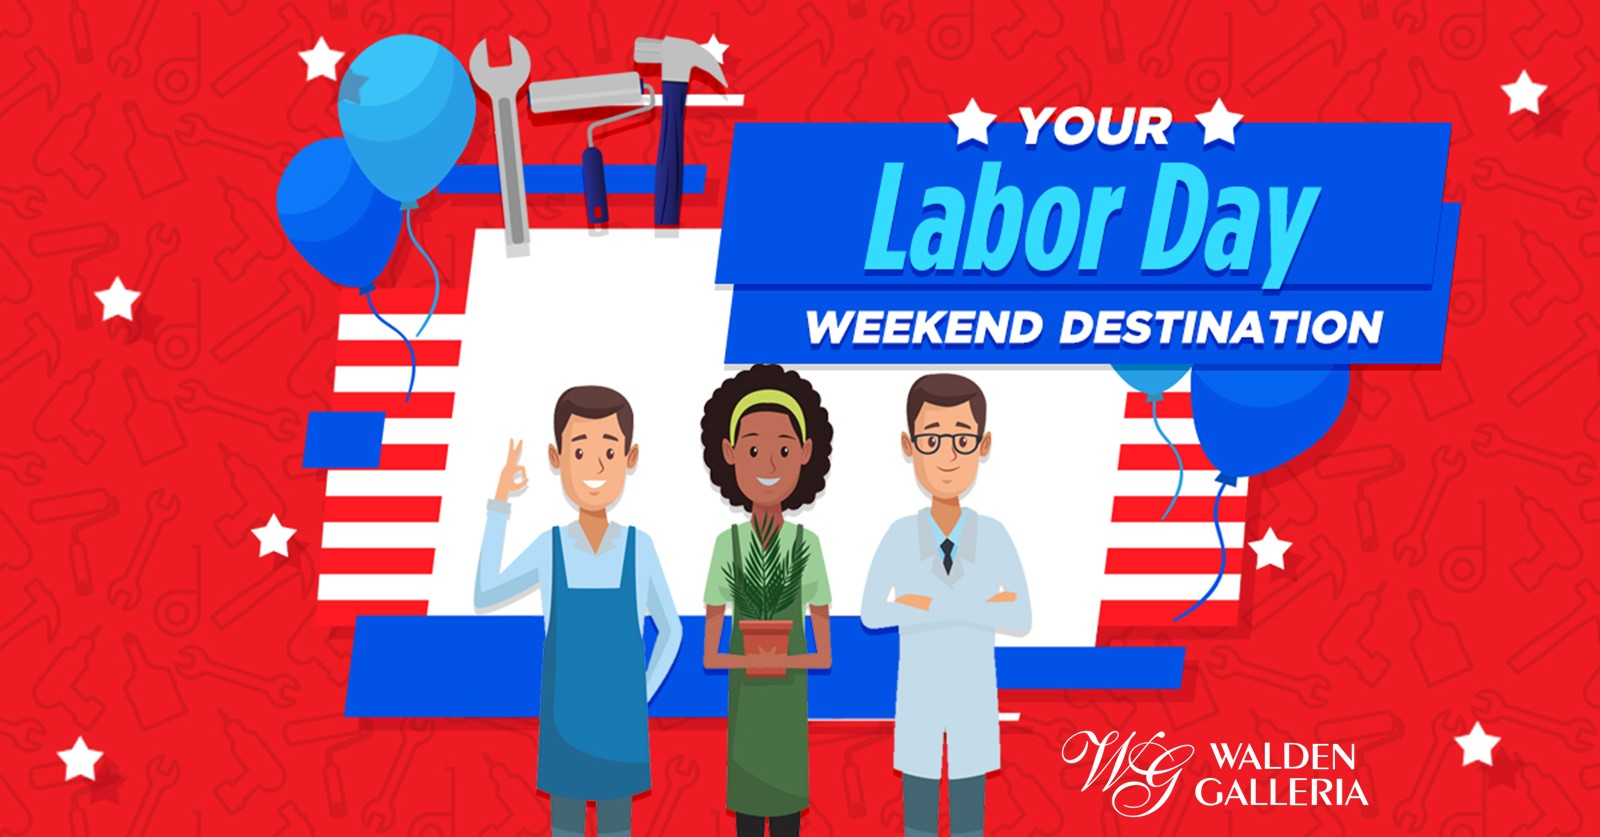 2019 fb ad labor day